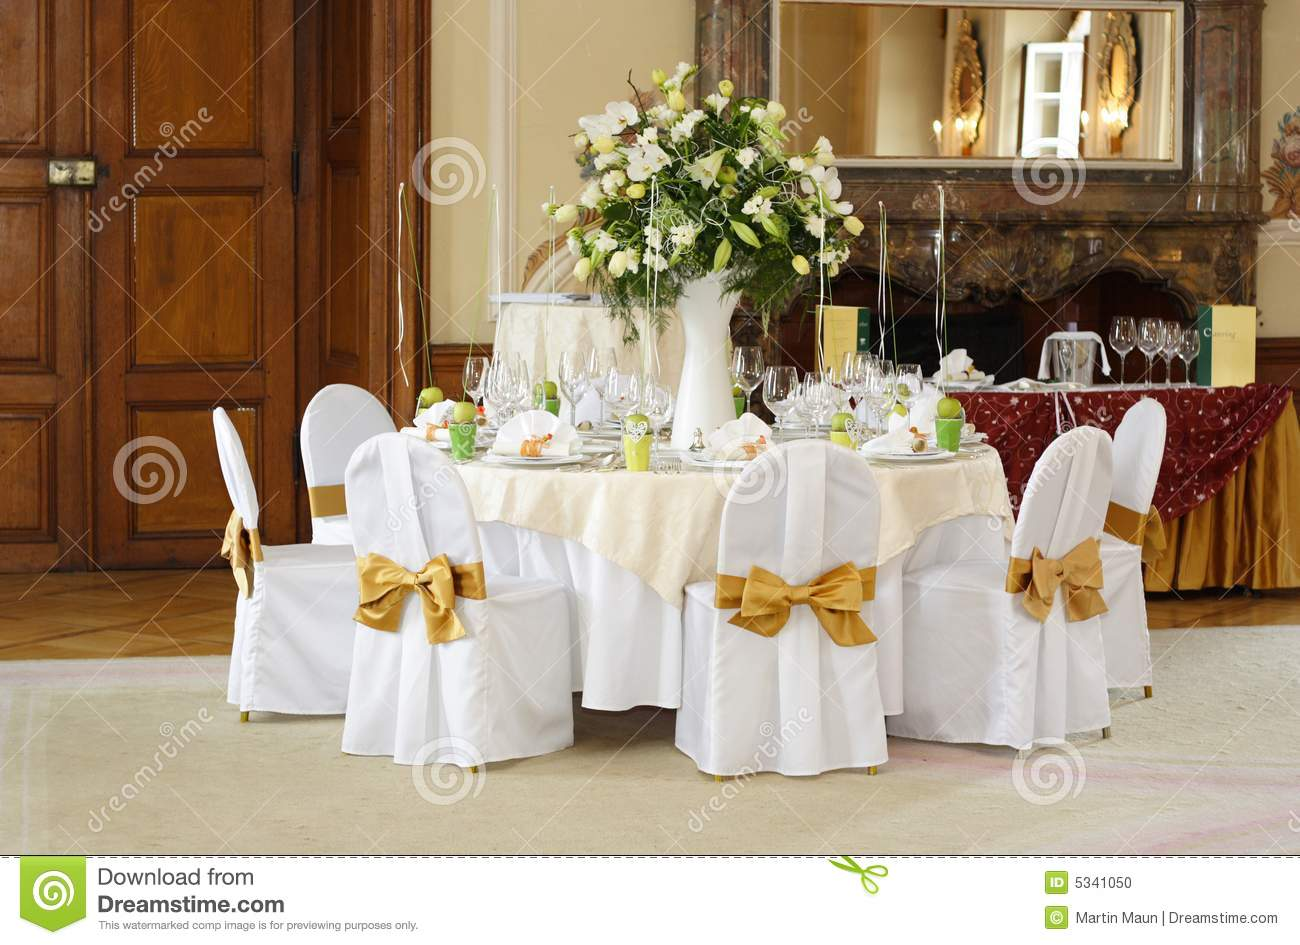 Download Wedding Table Setting Stock Photo. Image Of Hall, Celebration    5341050